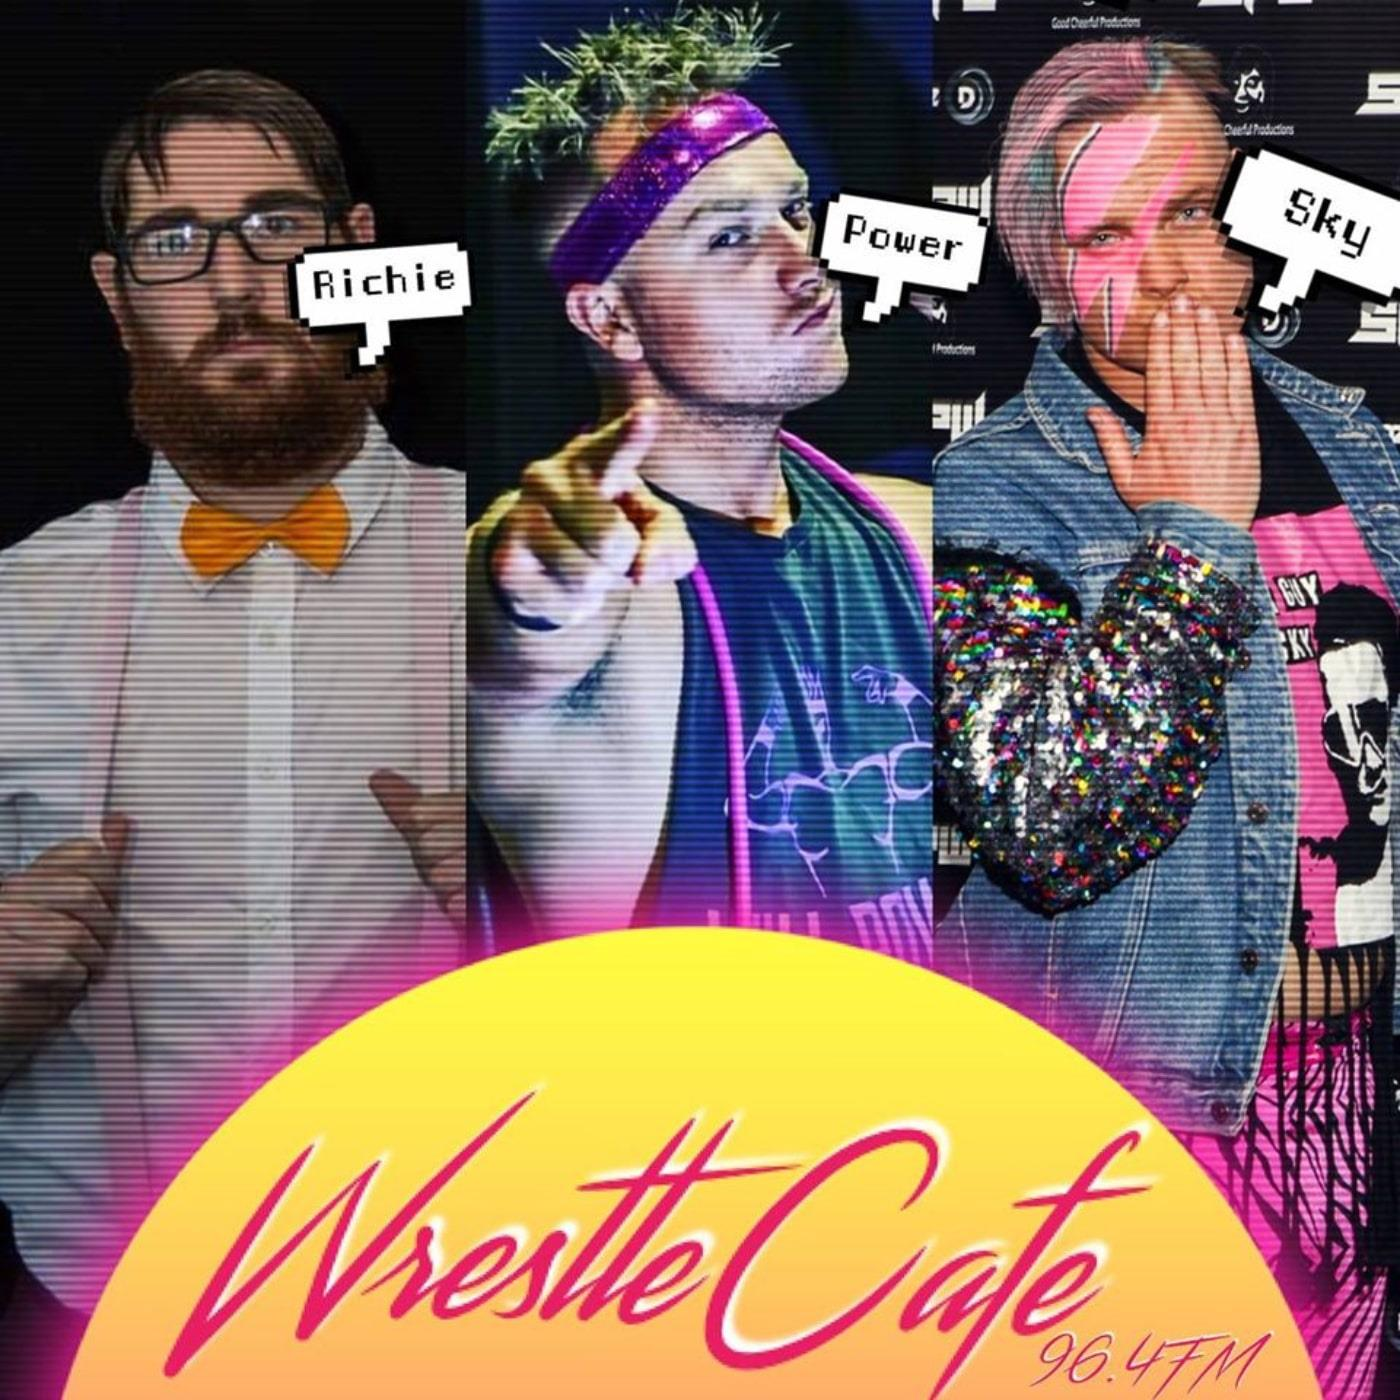 WrestleCafe - Richie, Power, and Sky-26-01-2021